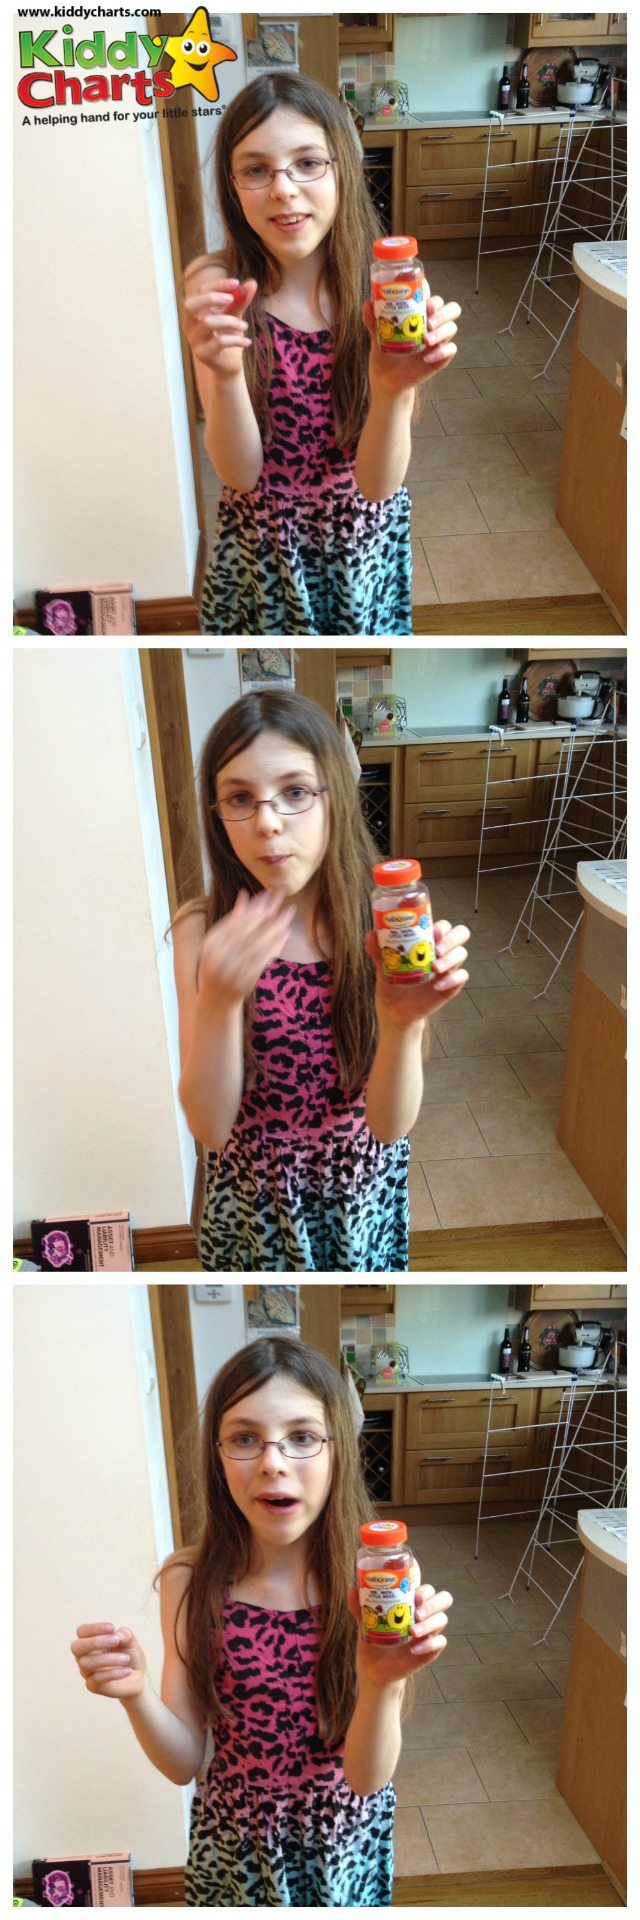 We have taken a look at the Mr Men softies product for Haliborange. My daughter rather liked them as you can see from this little sequence...though chewing them does make you pull some funny faces!